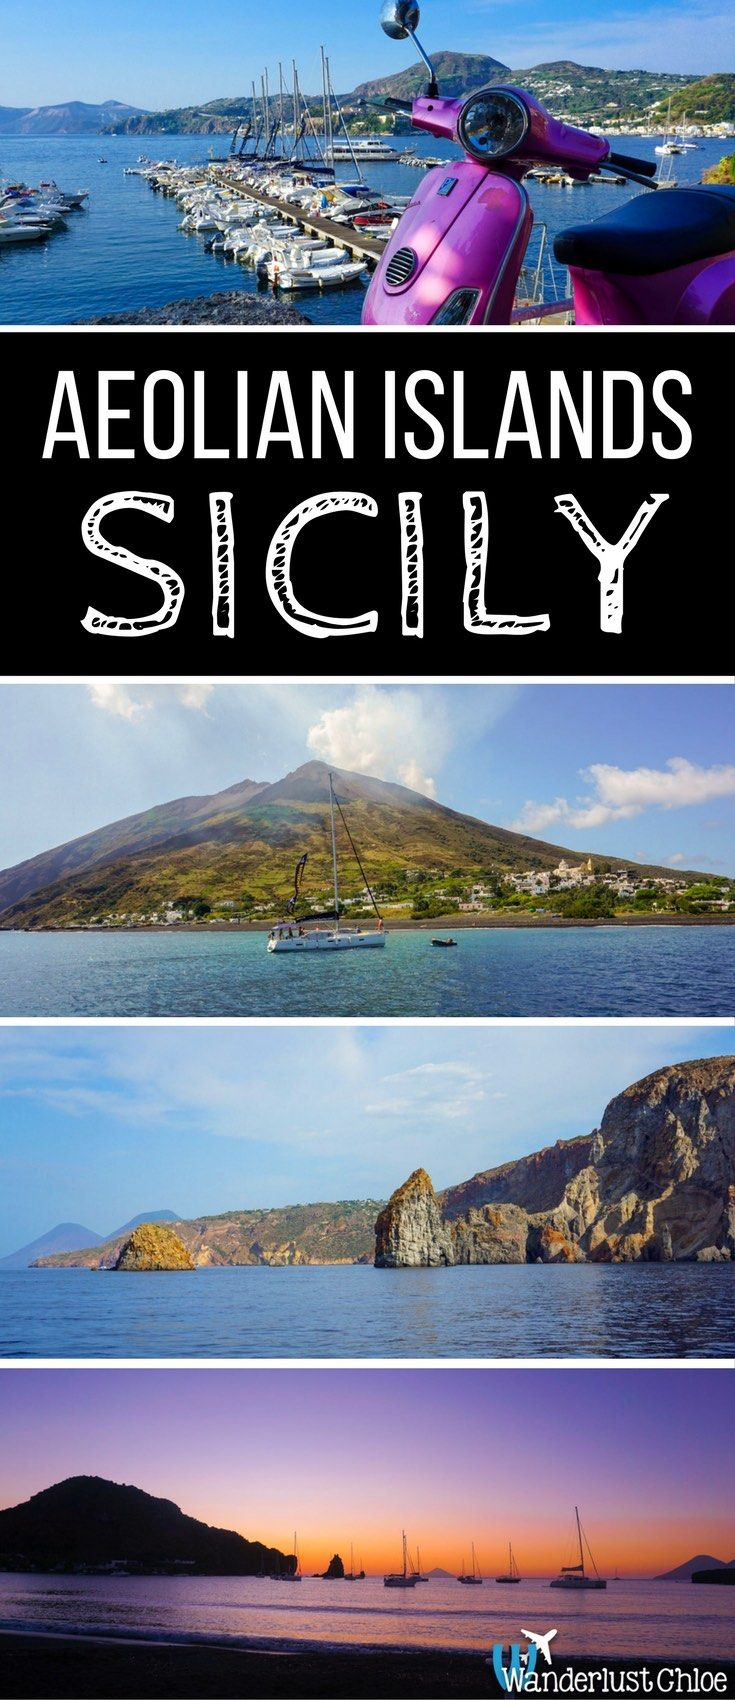 REVIEW: Sailing Around Sicily, Italy With MedSailors